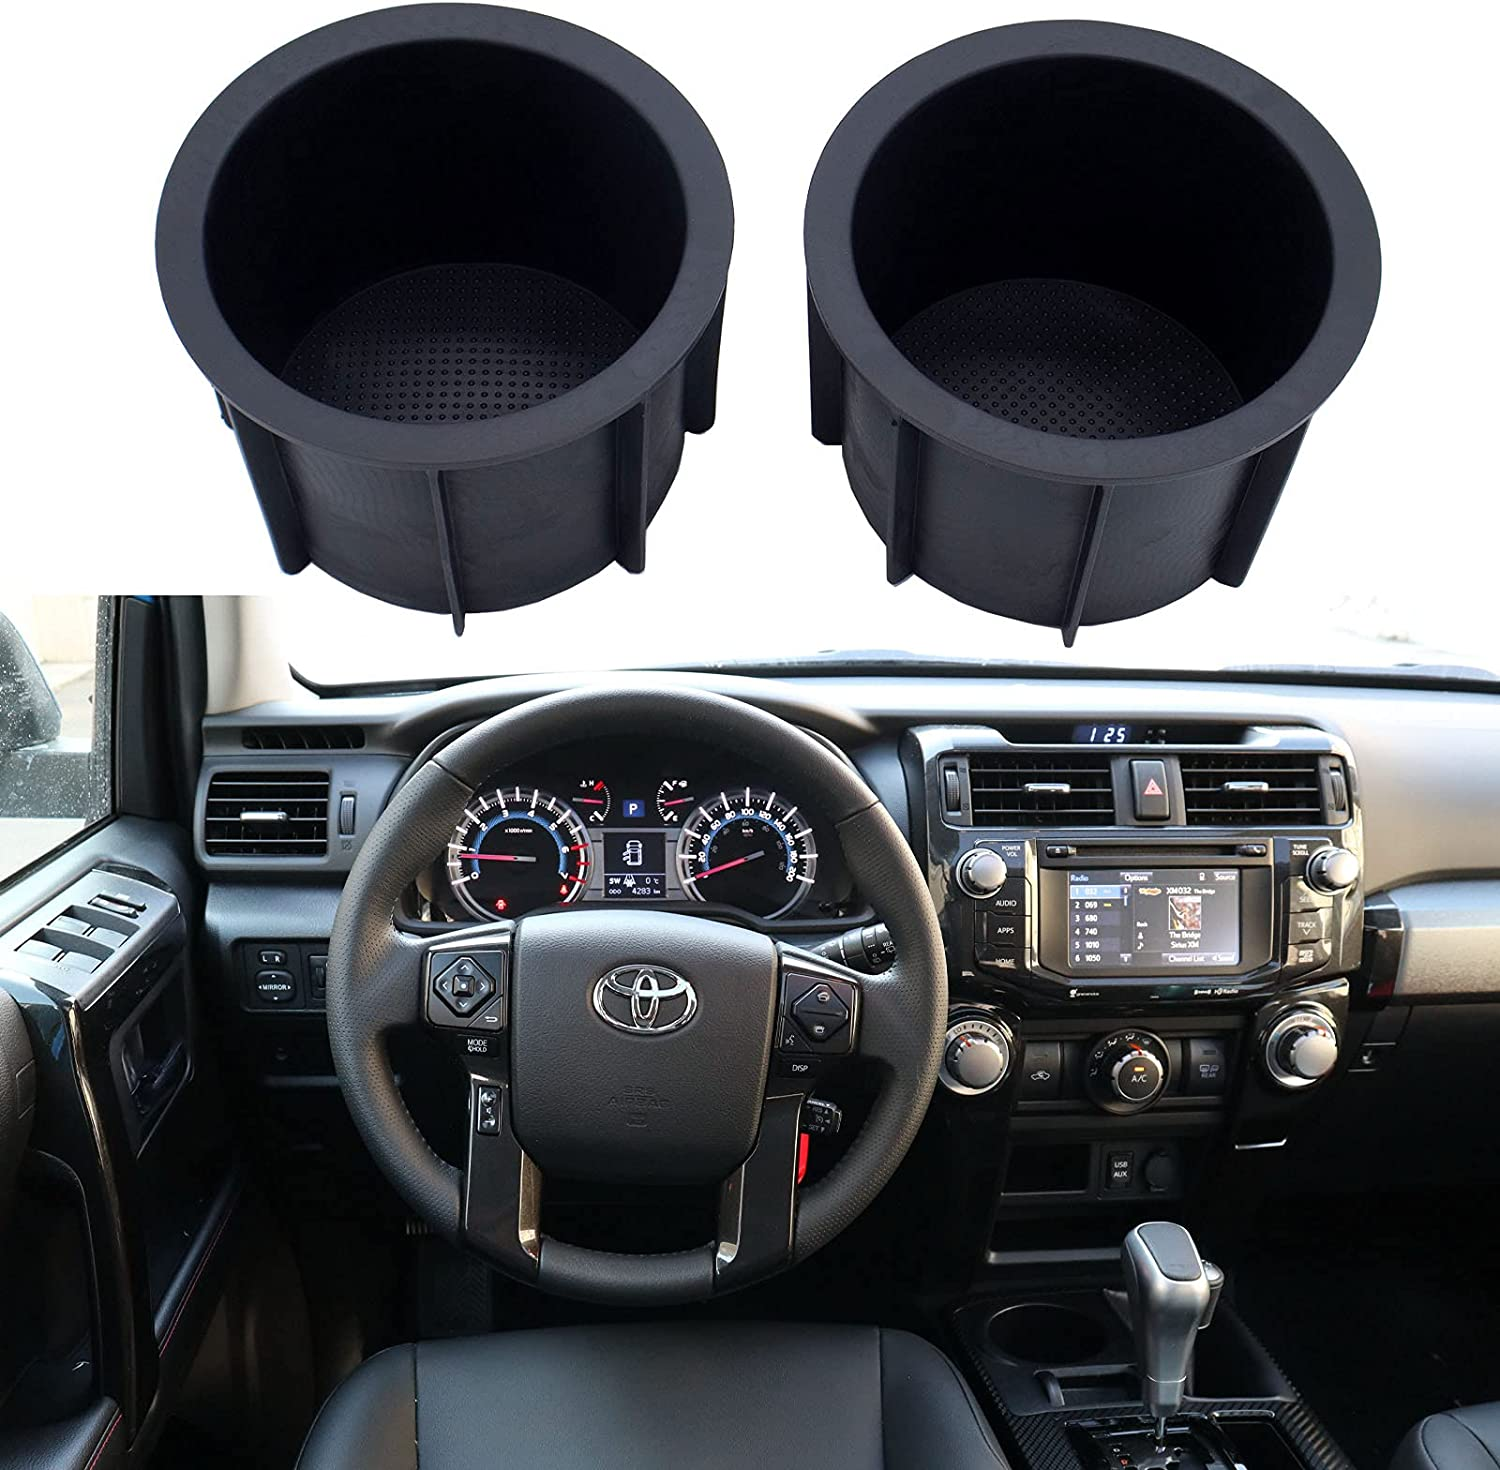 MOCW 66991-35030 Center Console Cup Holder Clearance SALE! Limited time! for Direct store Inserts 2010-2020